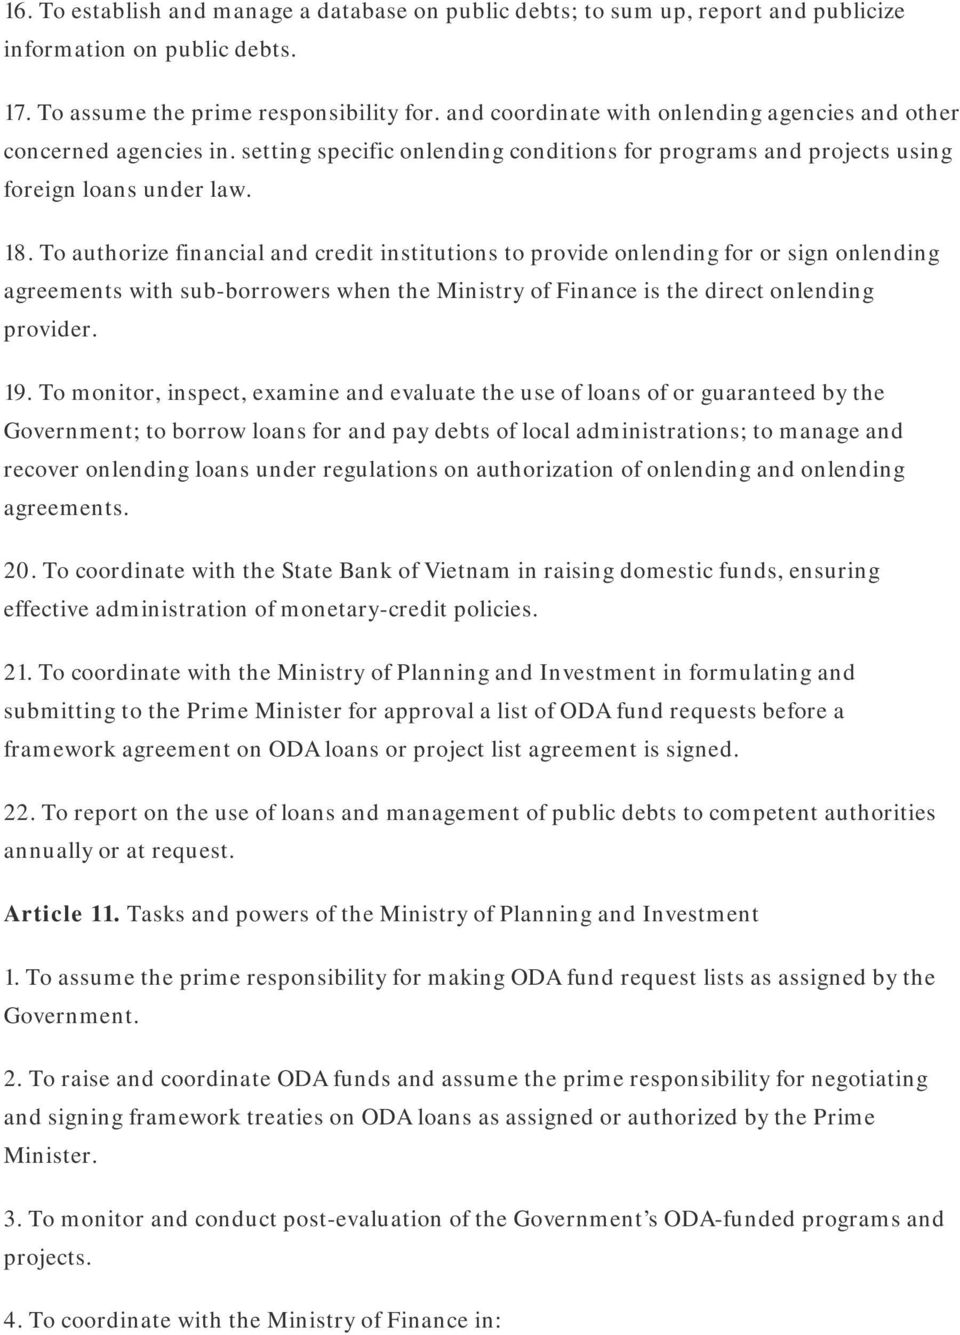 To authorize financial and credit institutions to provide onlending for or sign onlending agreements with sub-borrowers when the Ministry of Finance is the direct onlending provider. 19.